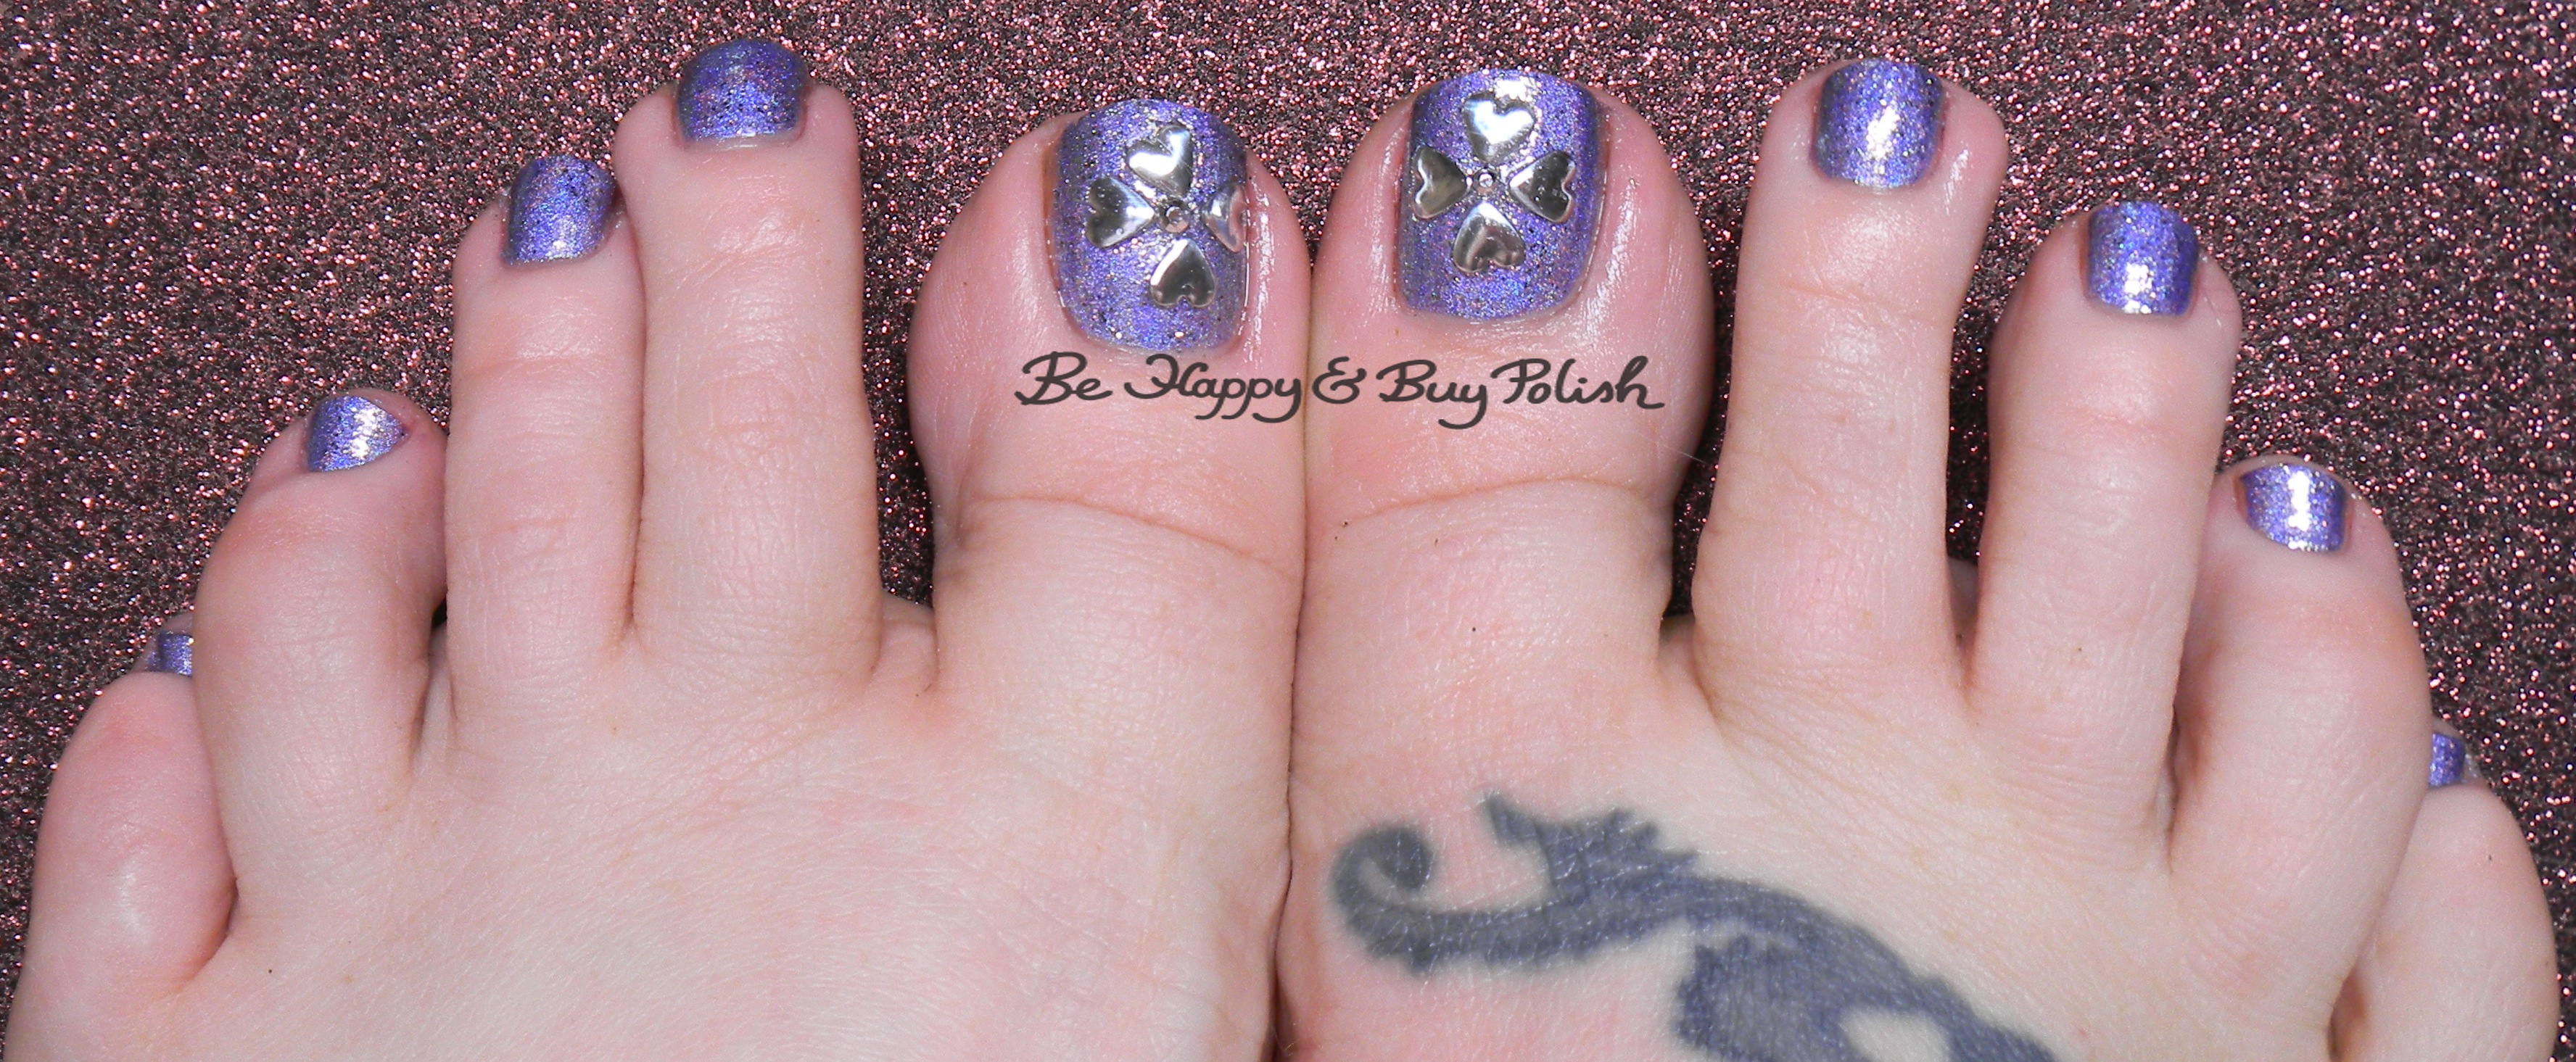 Color club eternal beauty pedicure bbc weekly round up be happy color club eternal beauty sephora formula x devious flower pedicure be happy and buy izmirmasajfo